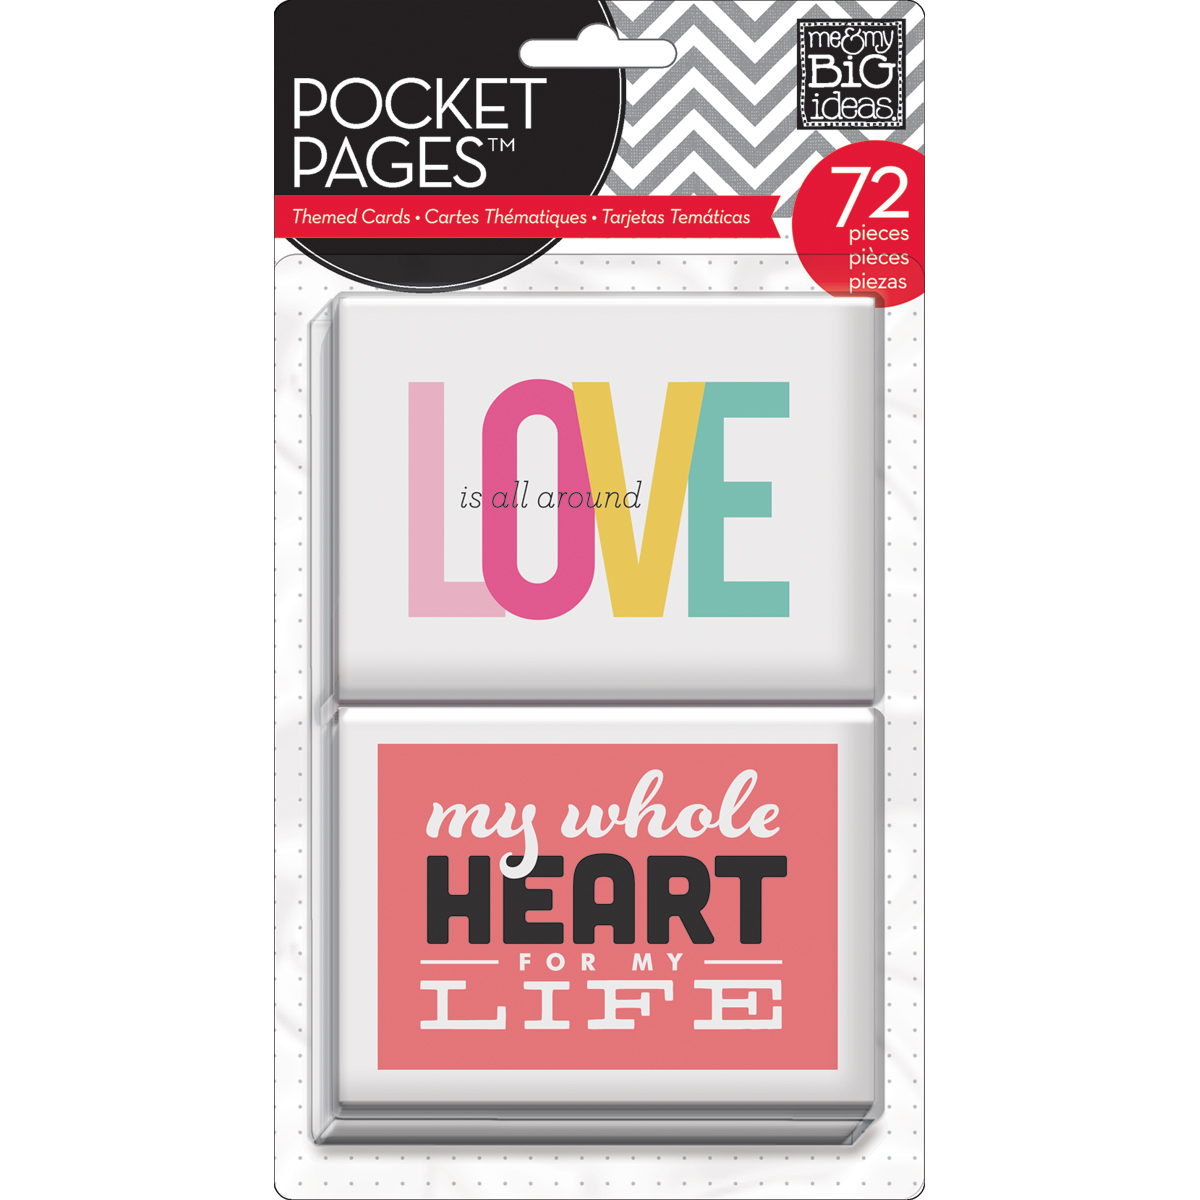 Me&My Big Ideas Love Pocket Pages Cards 3\u0022x4\u0022